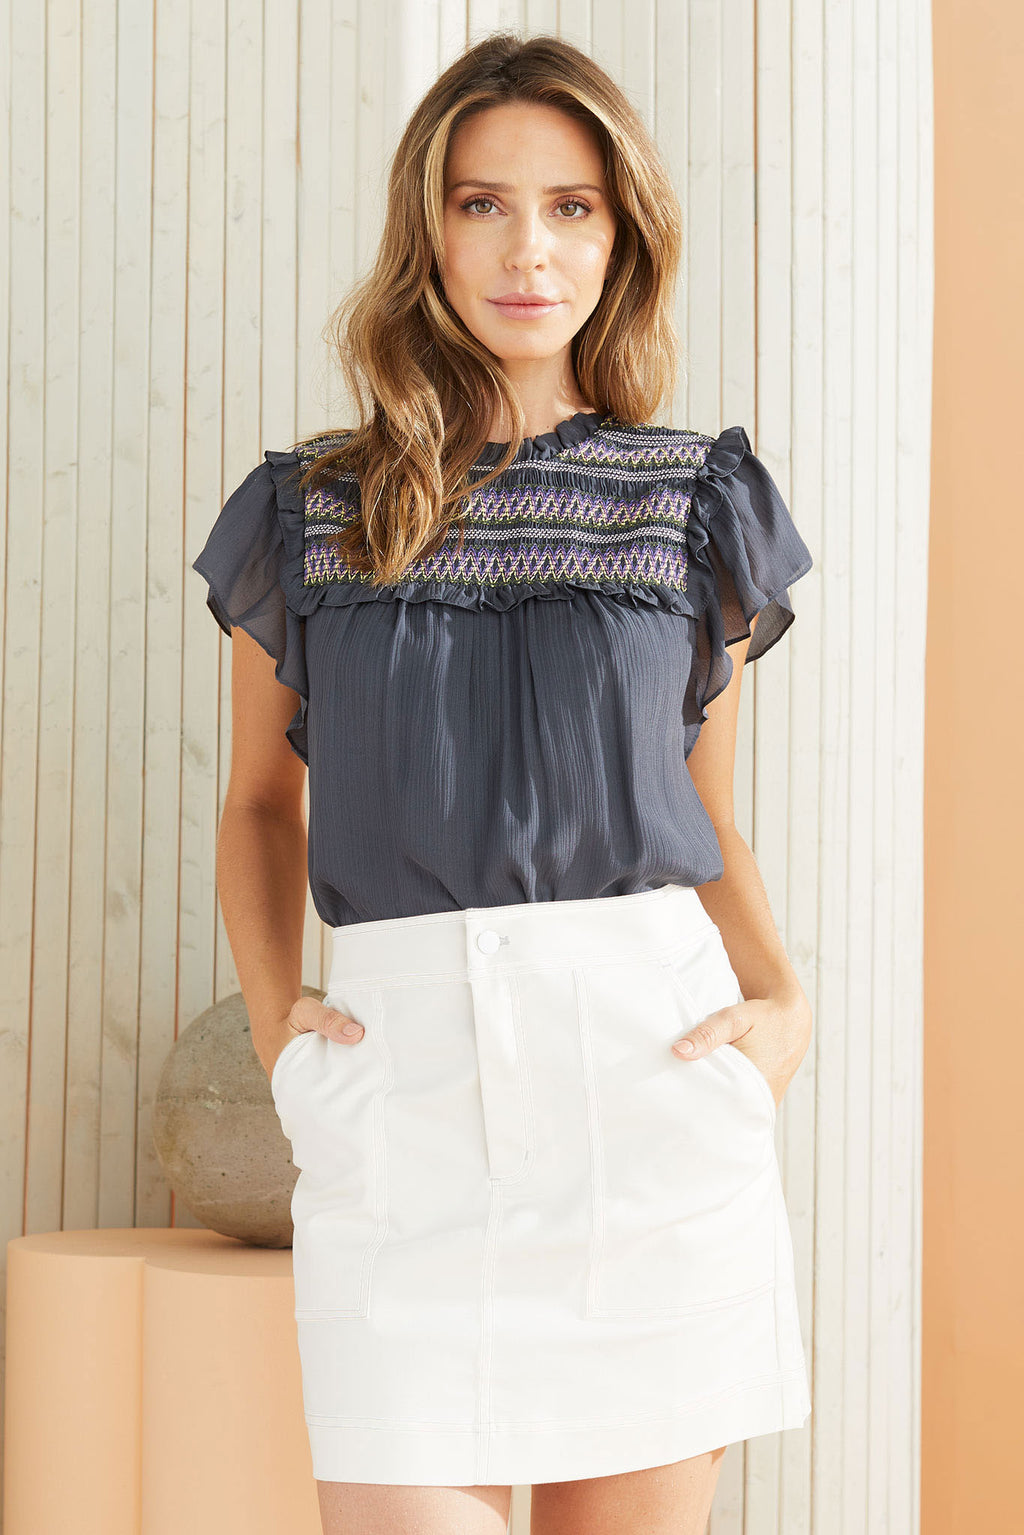 Short Sleeve Smocked navy Top worn with white skirt